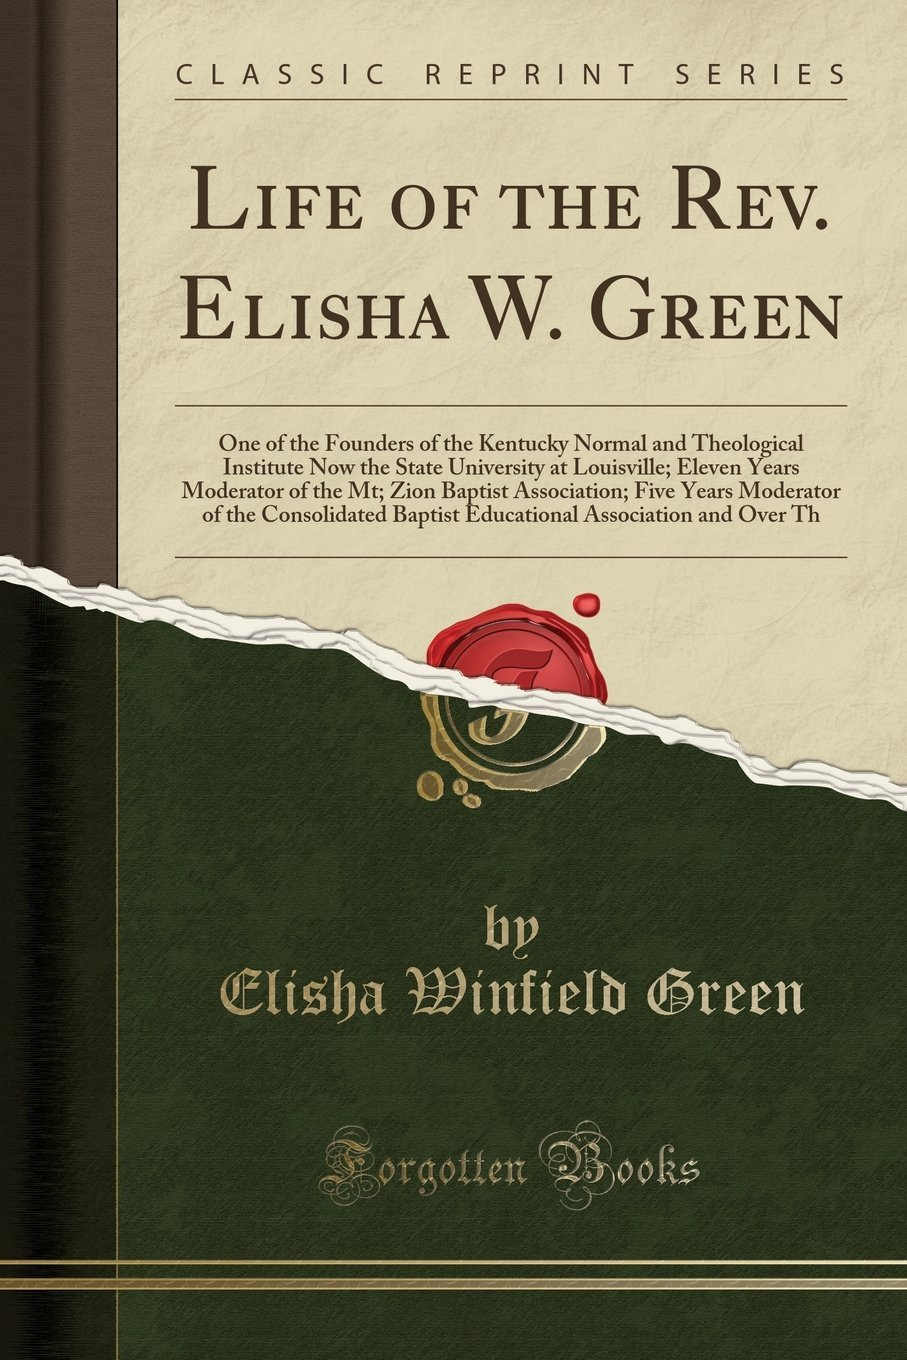 Download Life of the Rev. Elisha W. Green: One of the Founders of the Kentucky Normal and Theological Institute Now the State University at Louisville; Eleven ... Moderator of the Consolidated Baptist Edu ebook